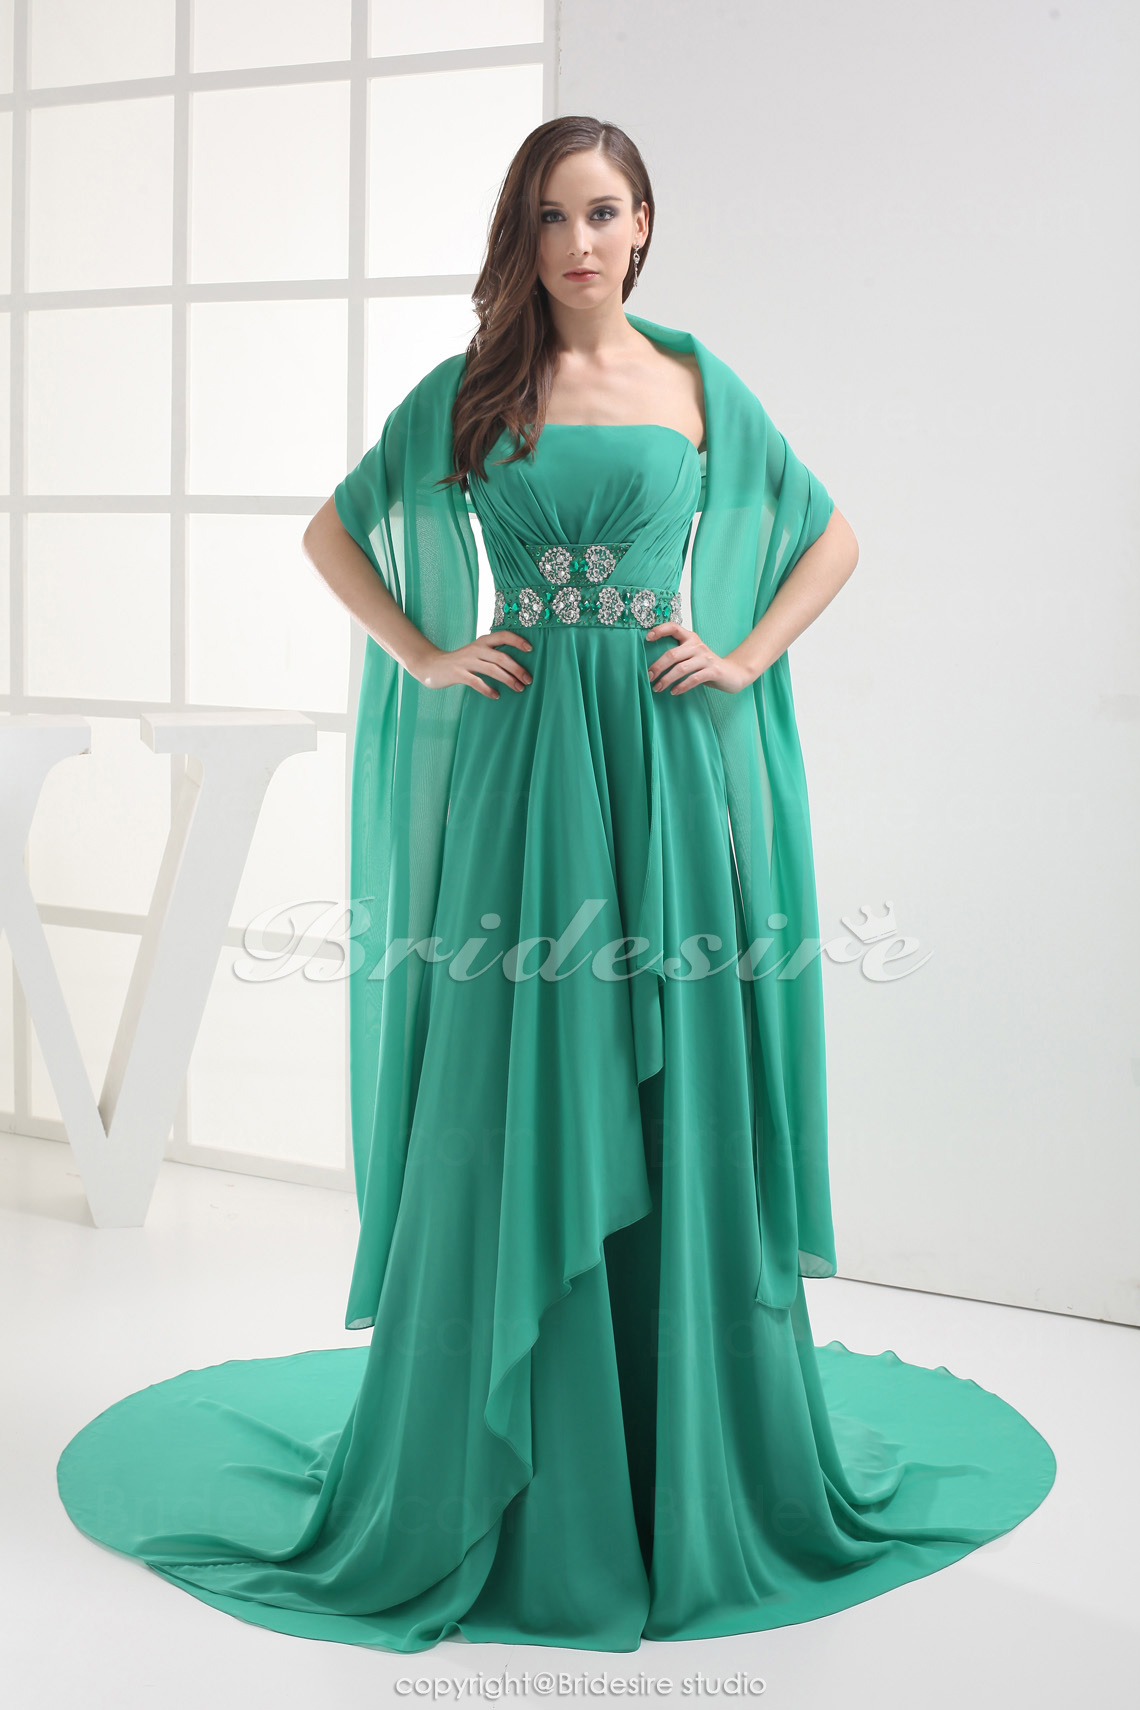 Sheath/Column Strapless Sweep Train Sleeveless Chiffon Dress